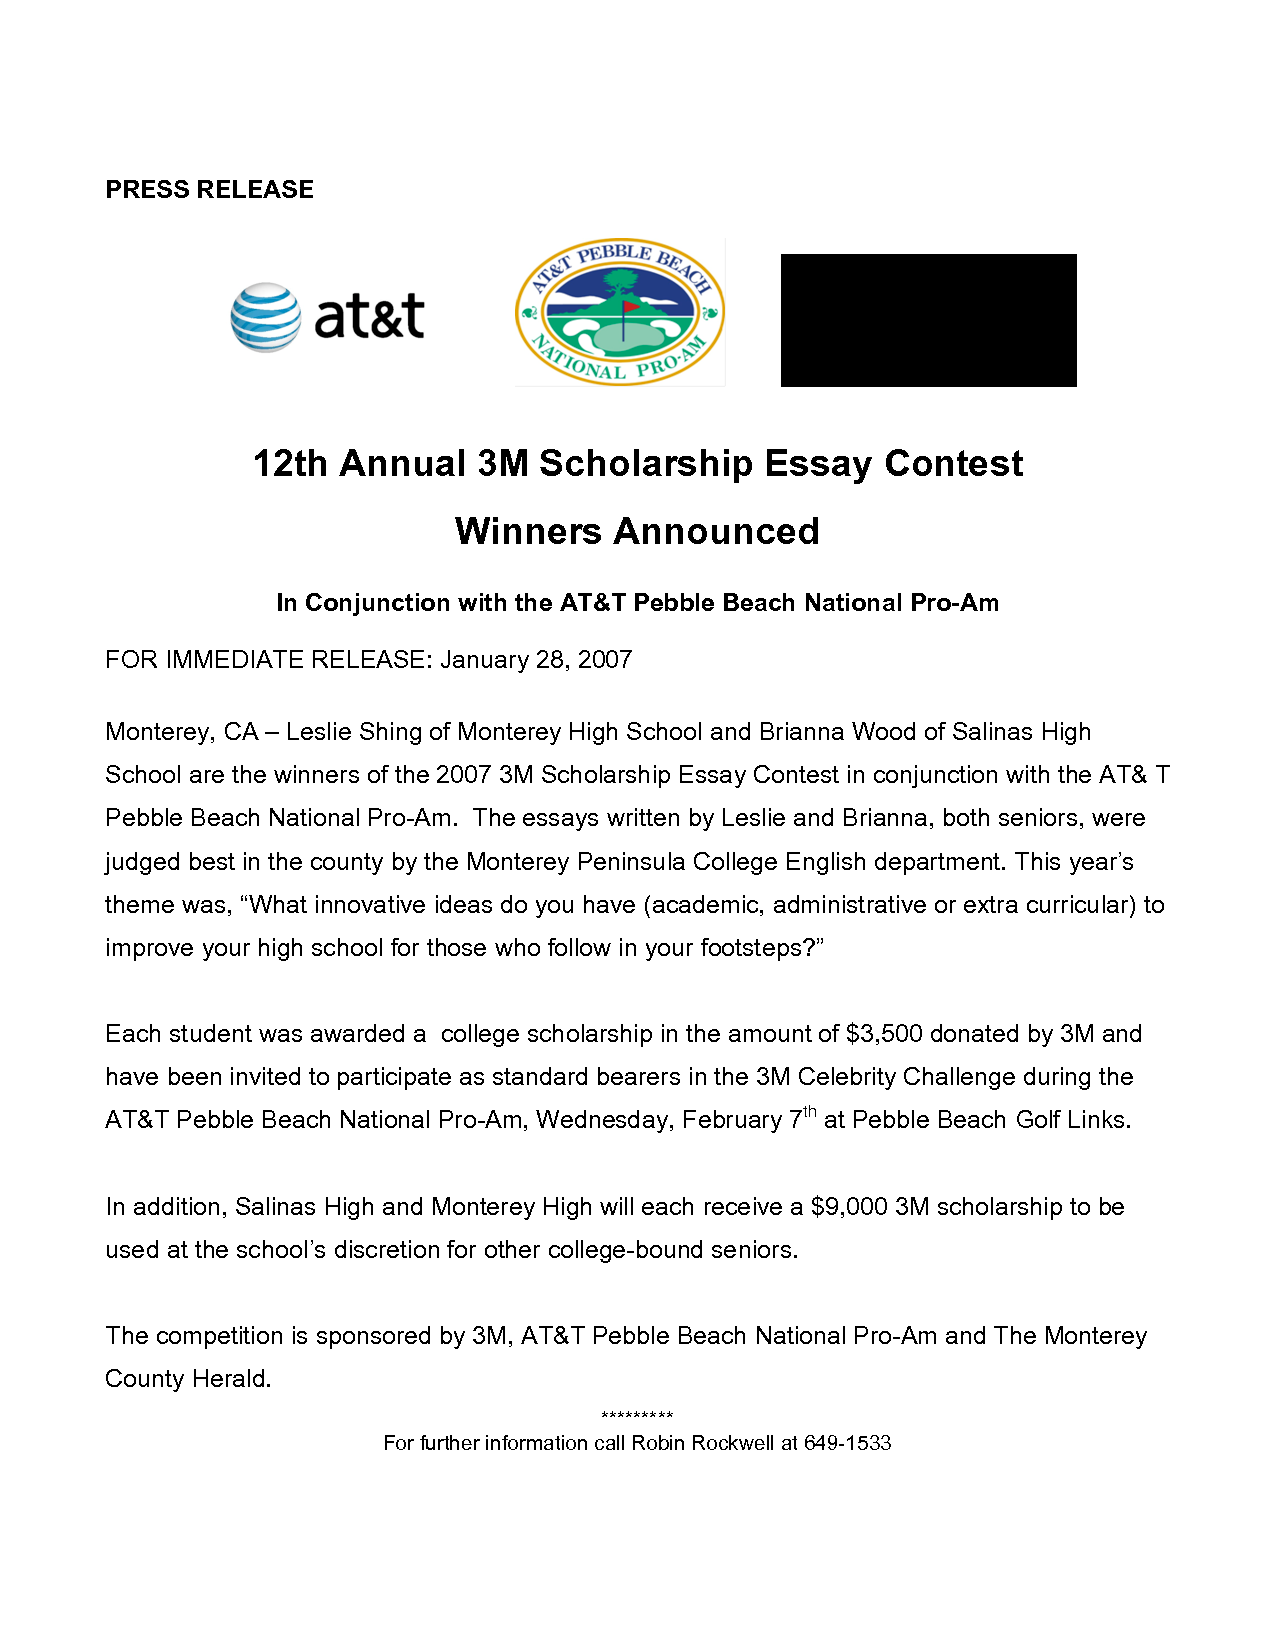 001 High School Scholarship Application Essay Help Contests For Juniors Scholarships 3 No Example Breathtaking Seniors 2017 2019 Louisiana Full